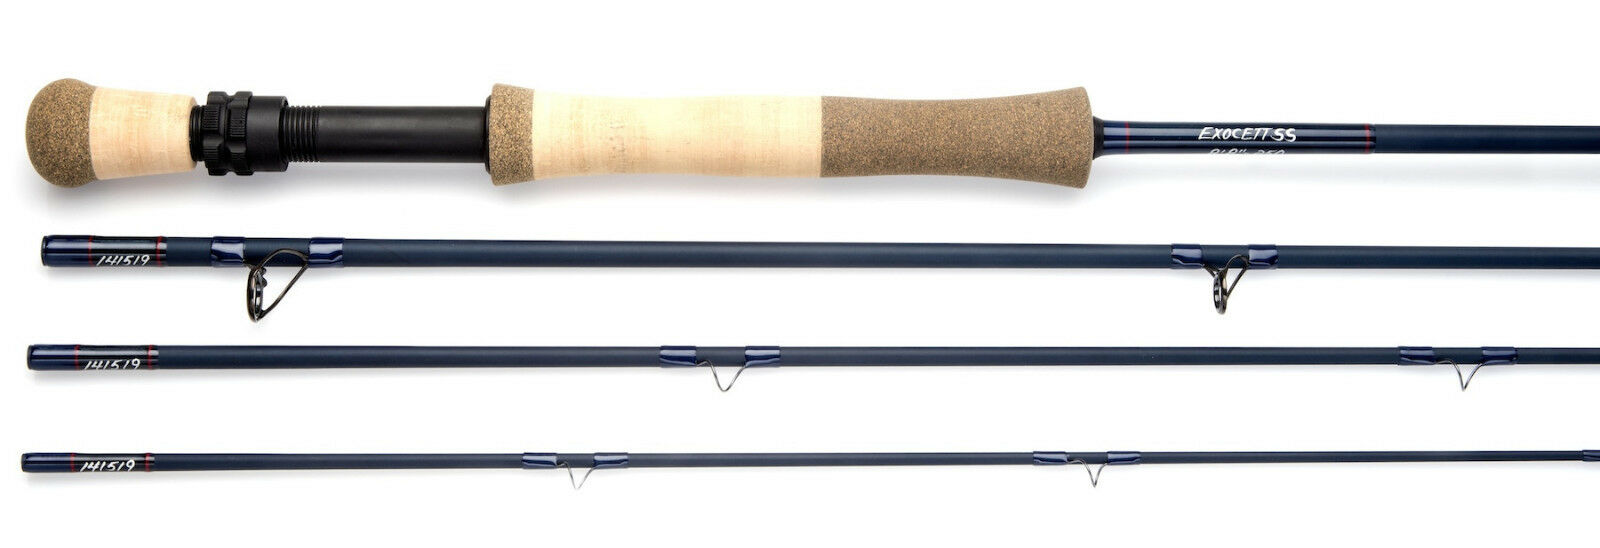 Thomas and Thomas Exocett SS Series Fly Rods -- -- Rods Streams of Dreams Fly Shop 2d6b75